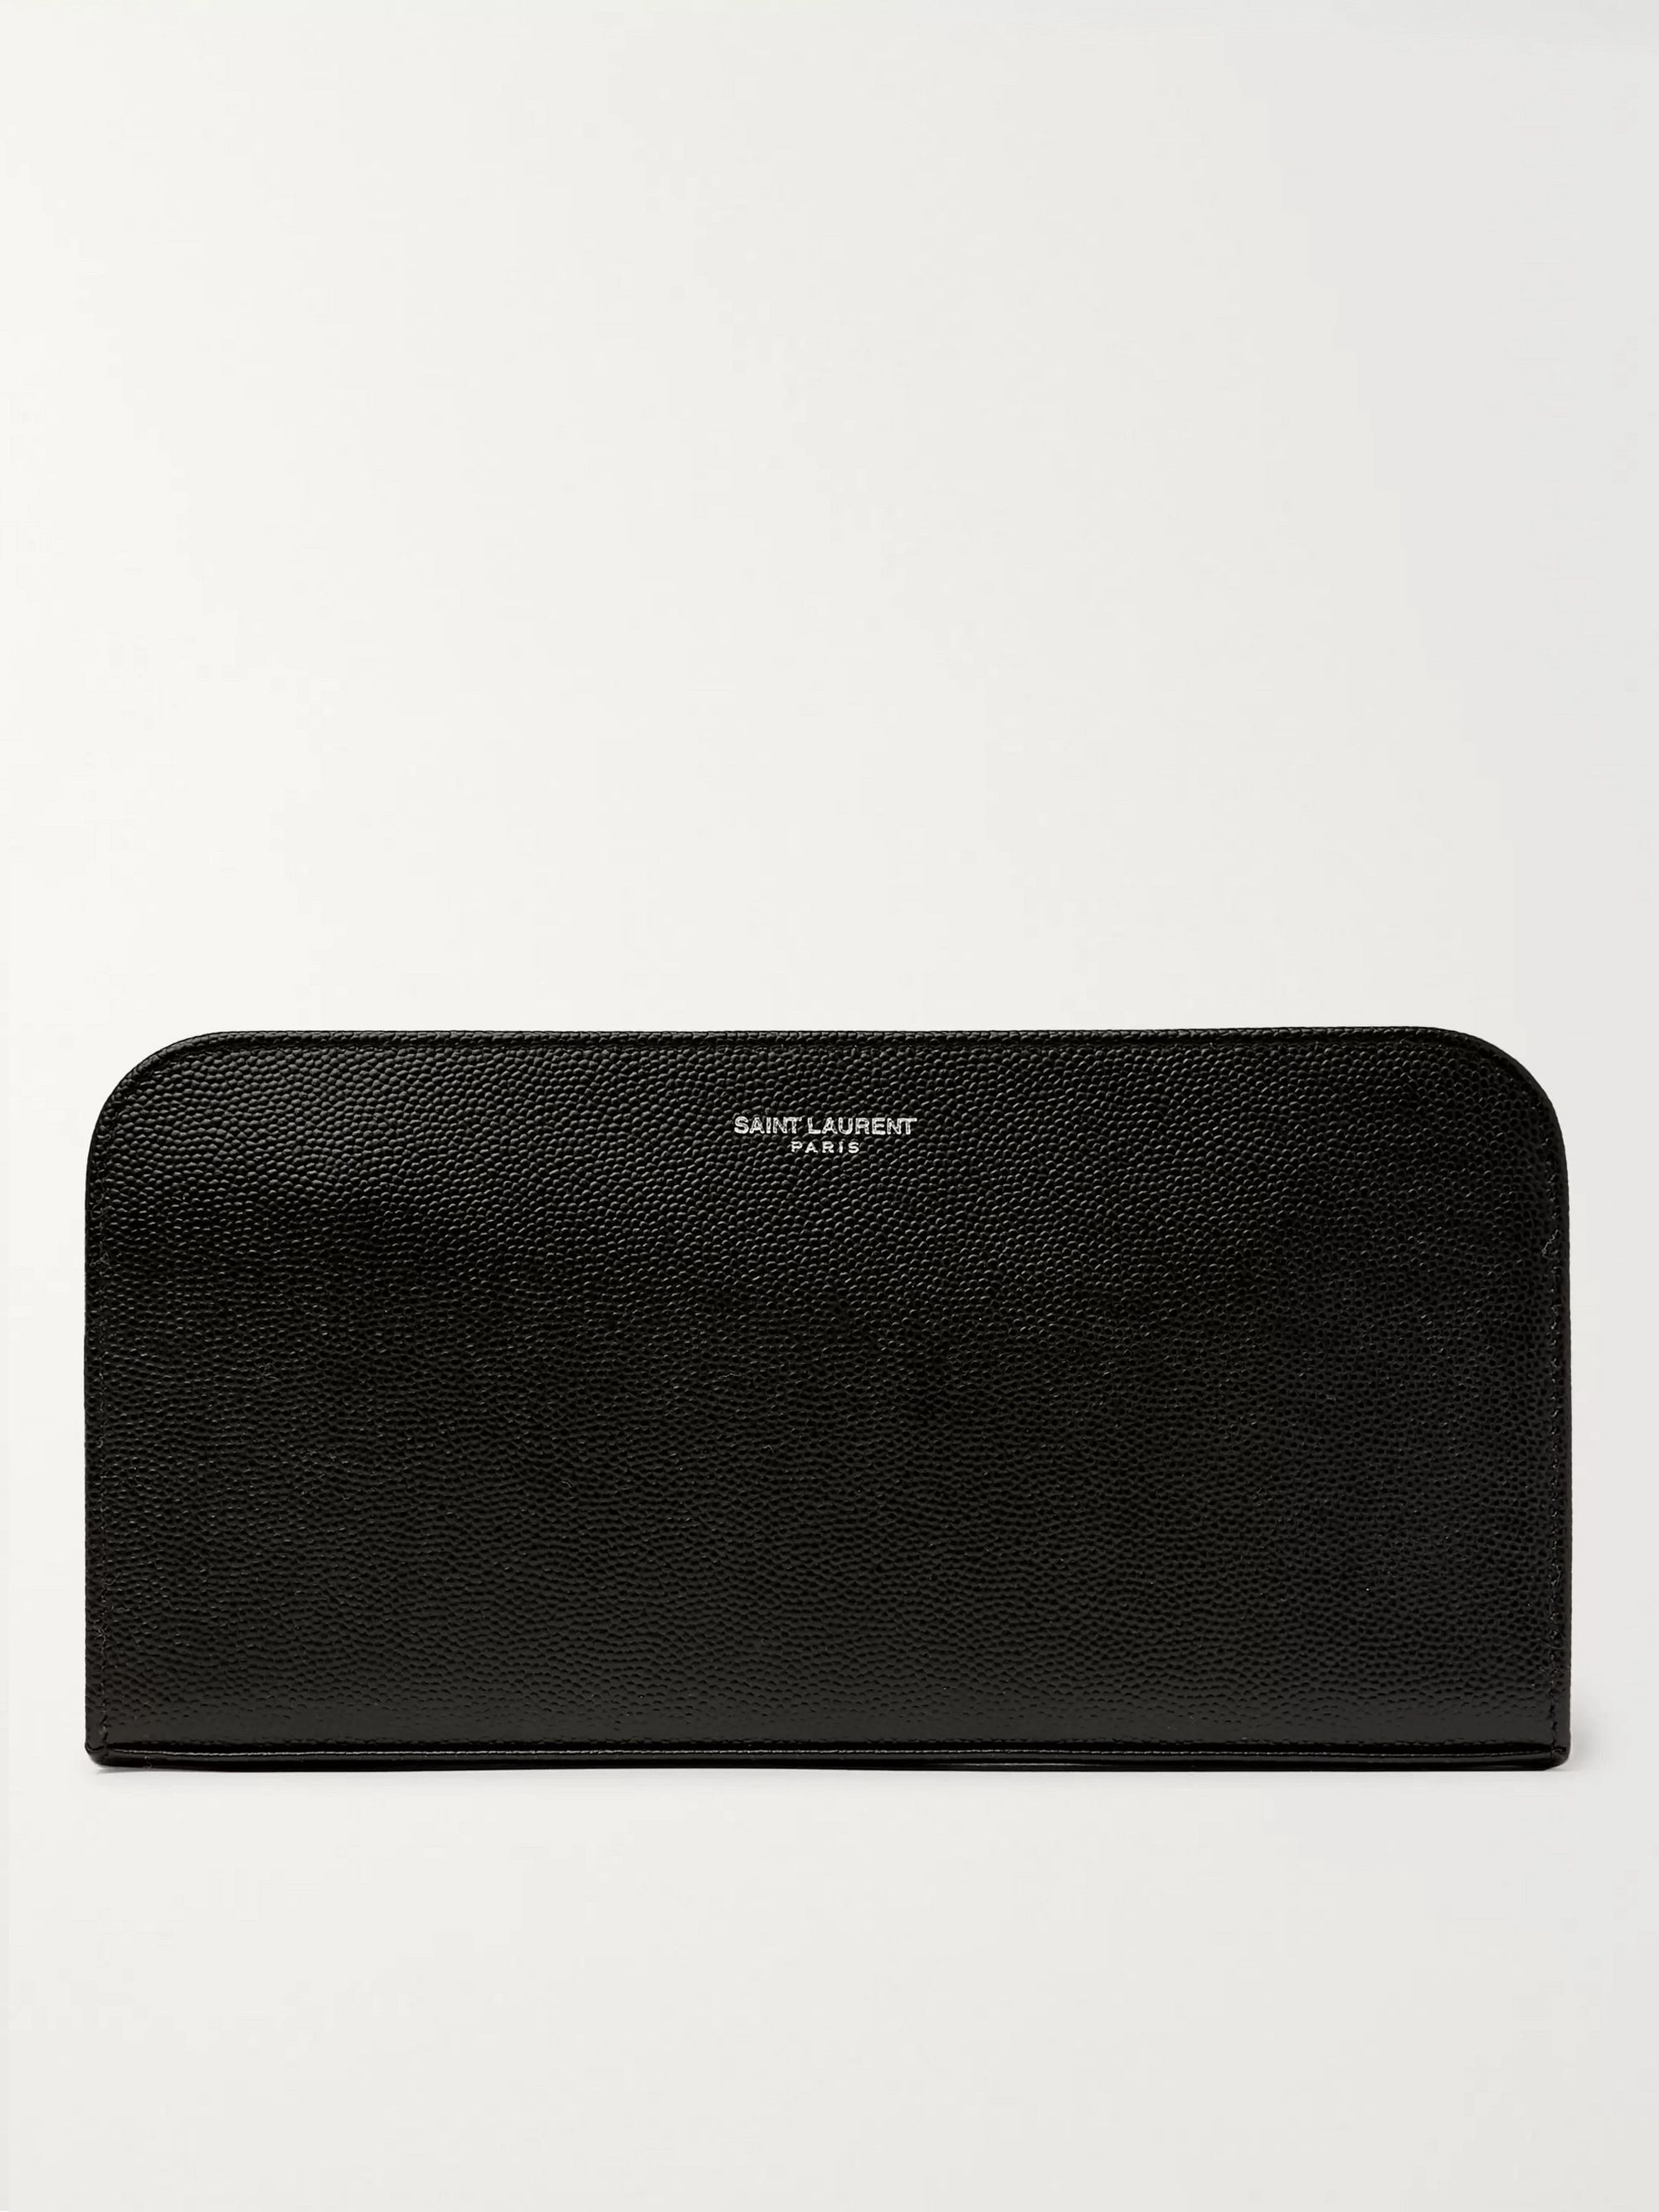 생 로랑 지갑 Saint Laurent Pebble-Grain Leather Zip-Around Wallet,Black